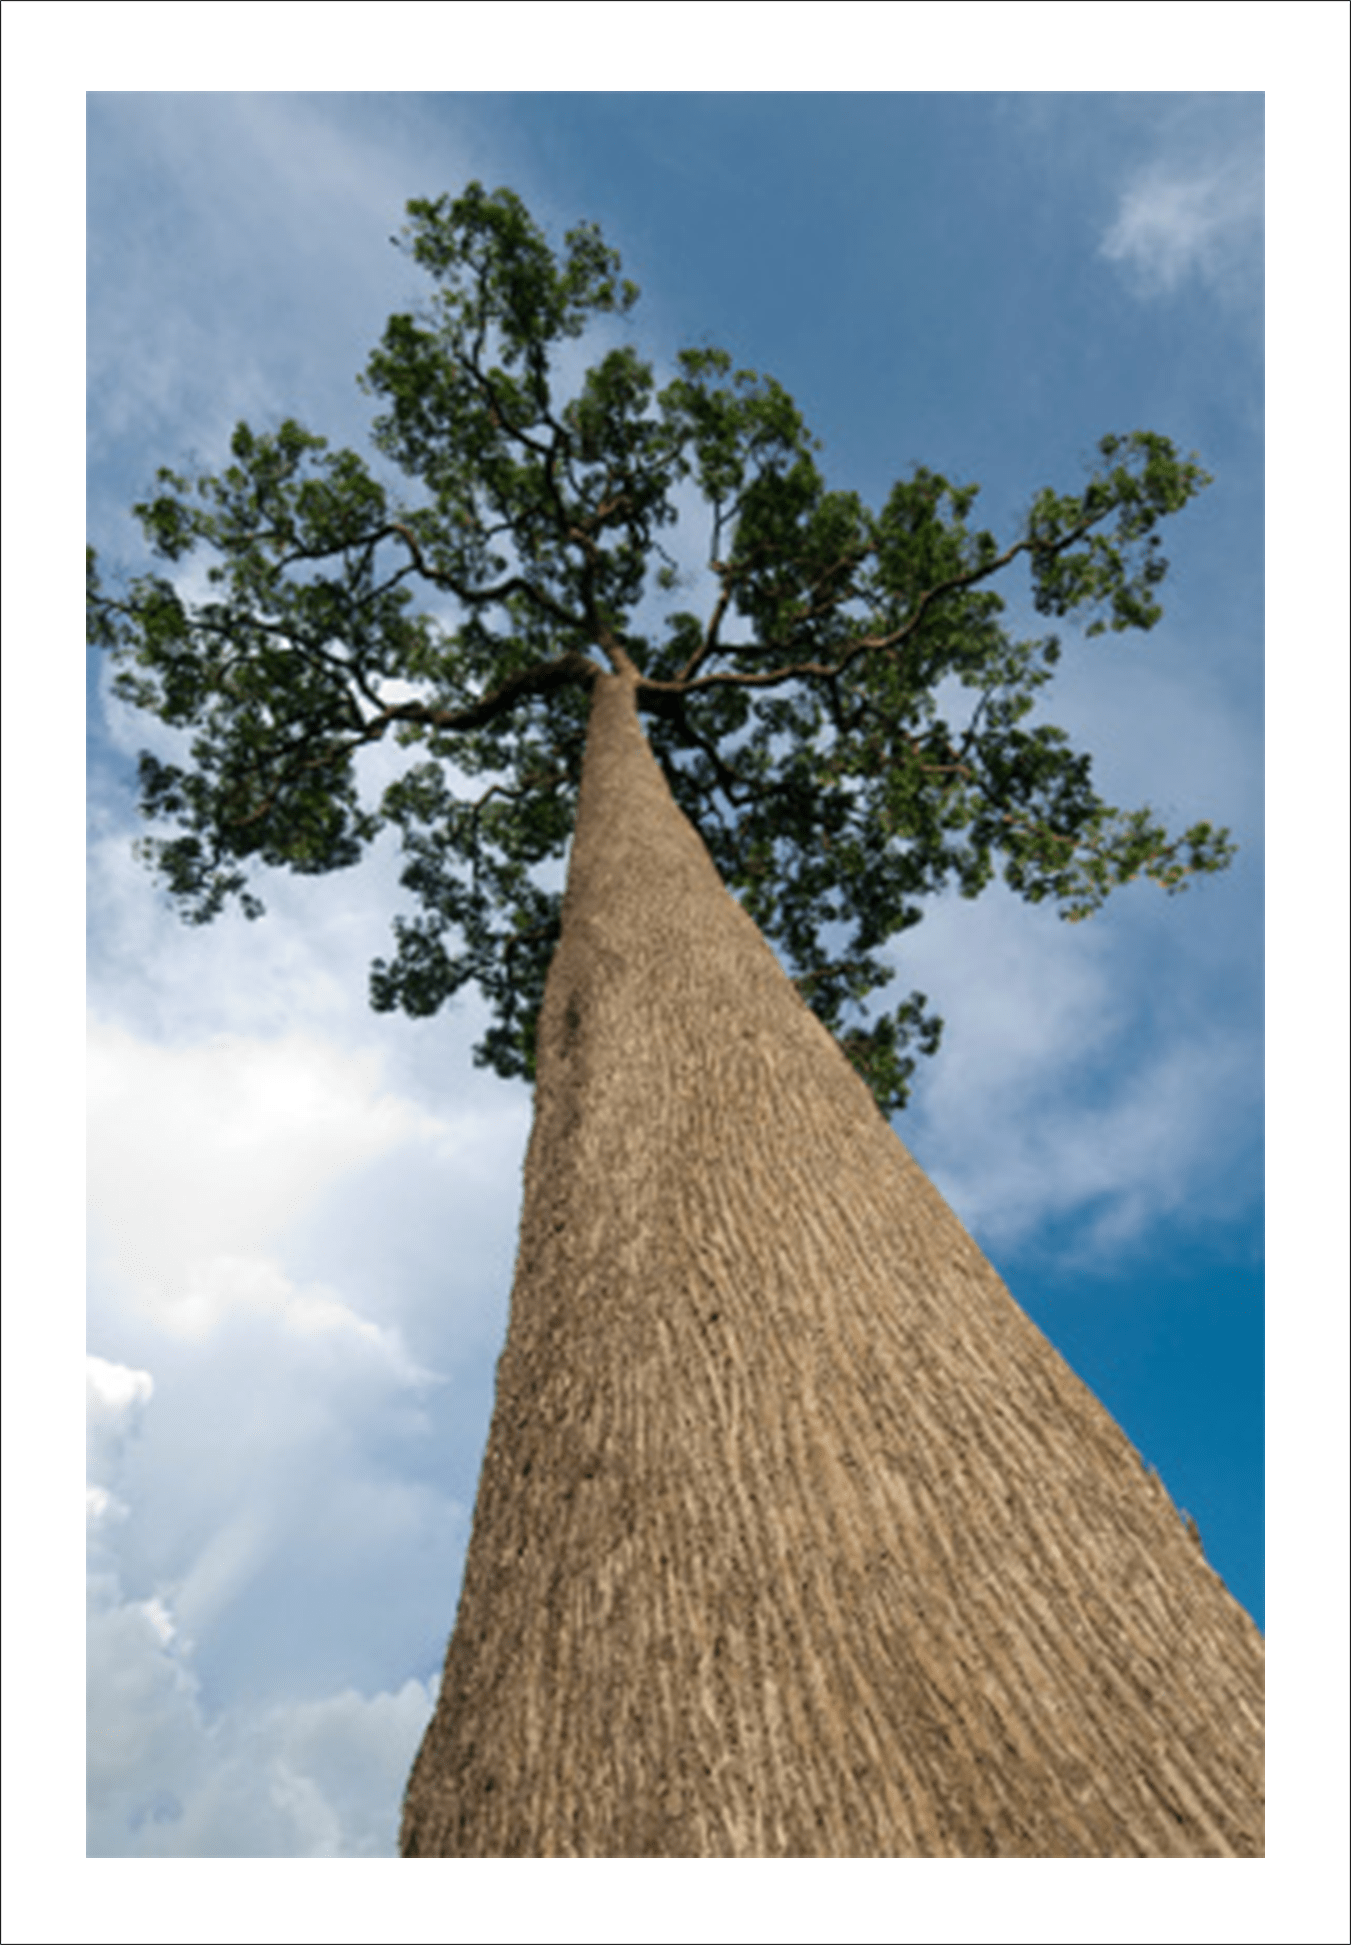 A tree in the Amazon Rainforest where our brazil nuts are grown